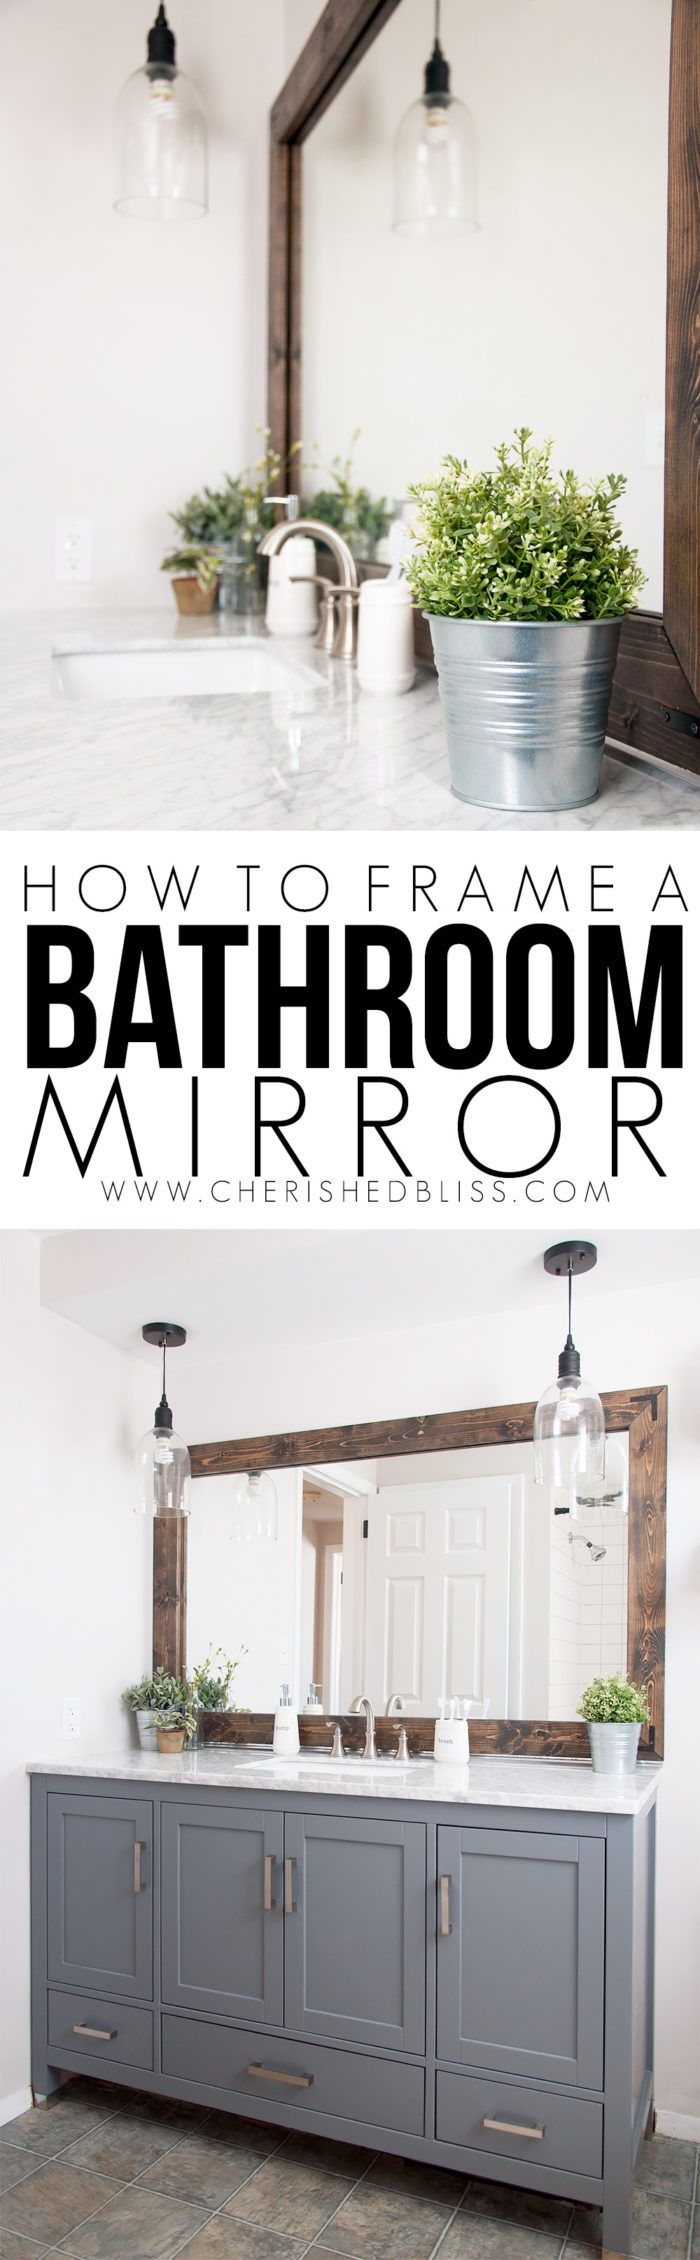 Badezimmer dekor bauernhaus fresh u fun diy bathroom decor ideas in   farmhouse decor